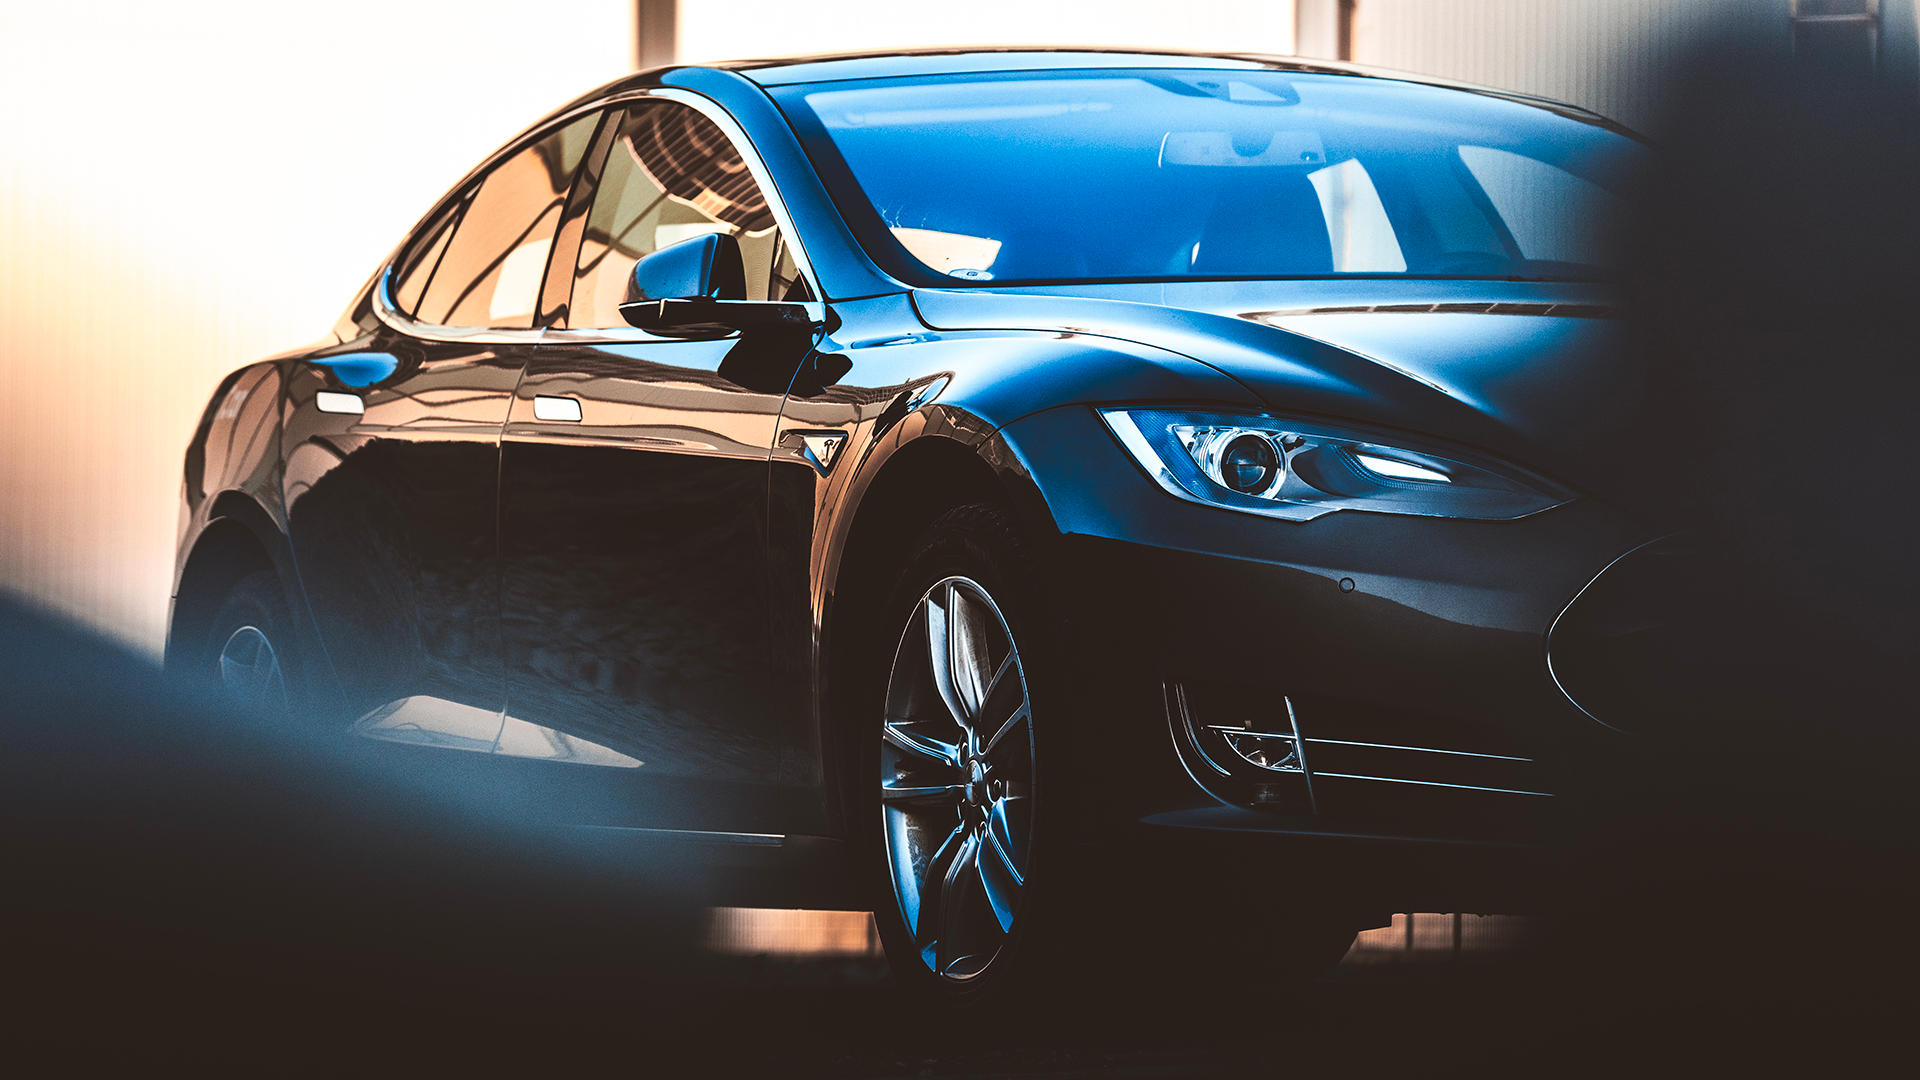 Tesla's auto business is starting to resemble Apple's business. It's time investors recognize the high-margin services Tesla is rolling out.